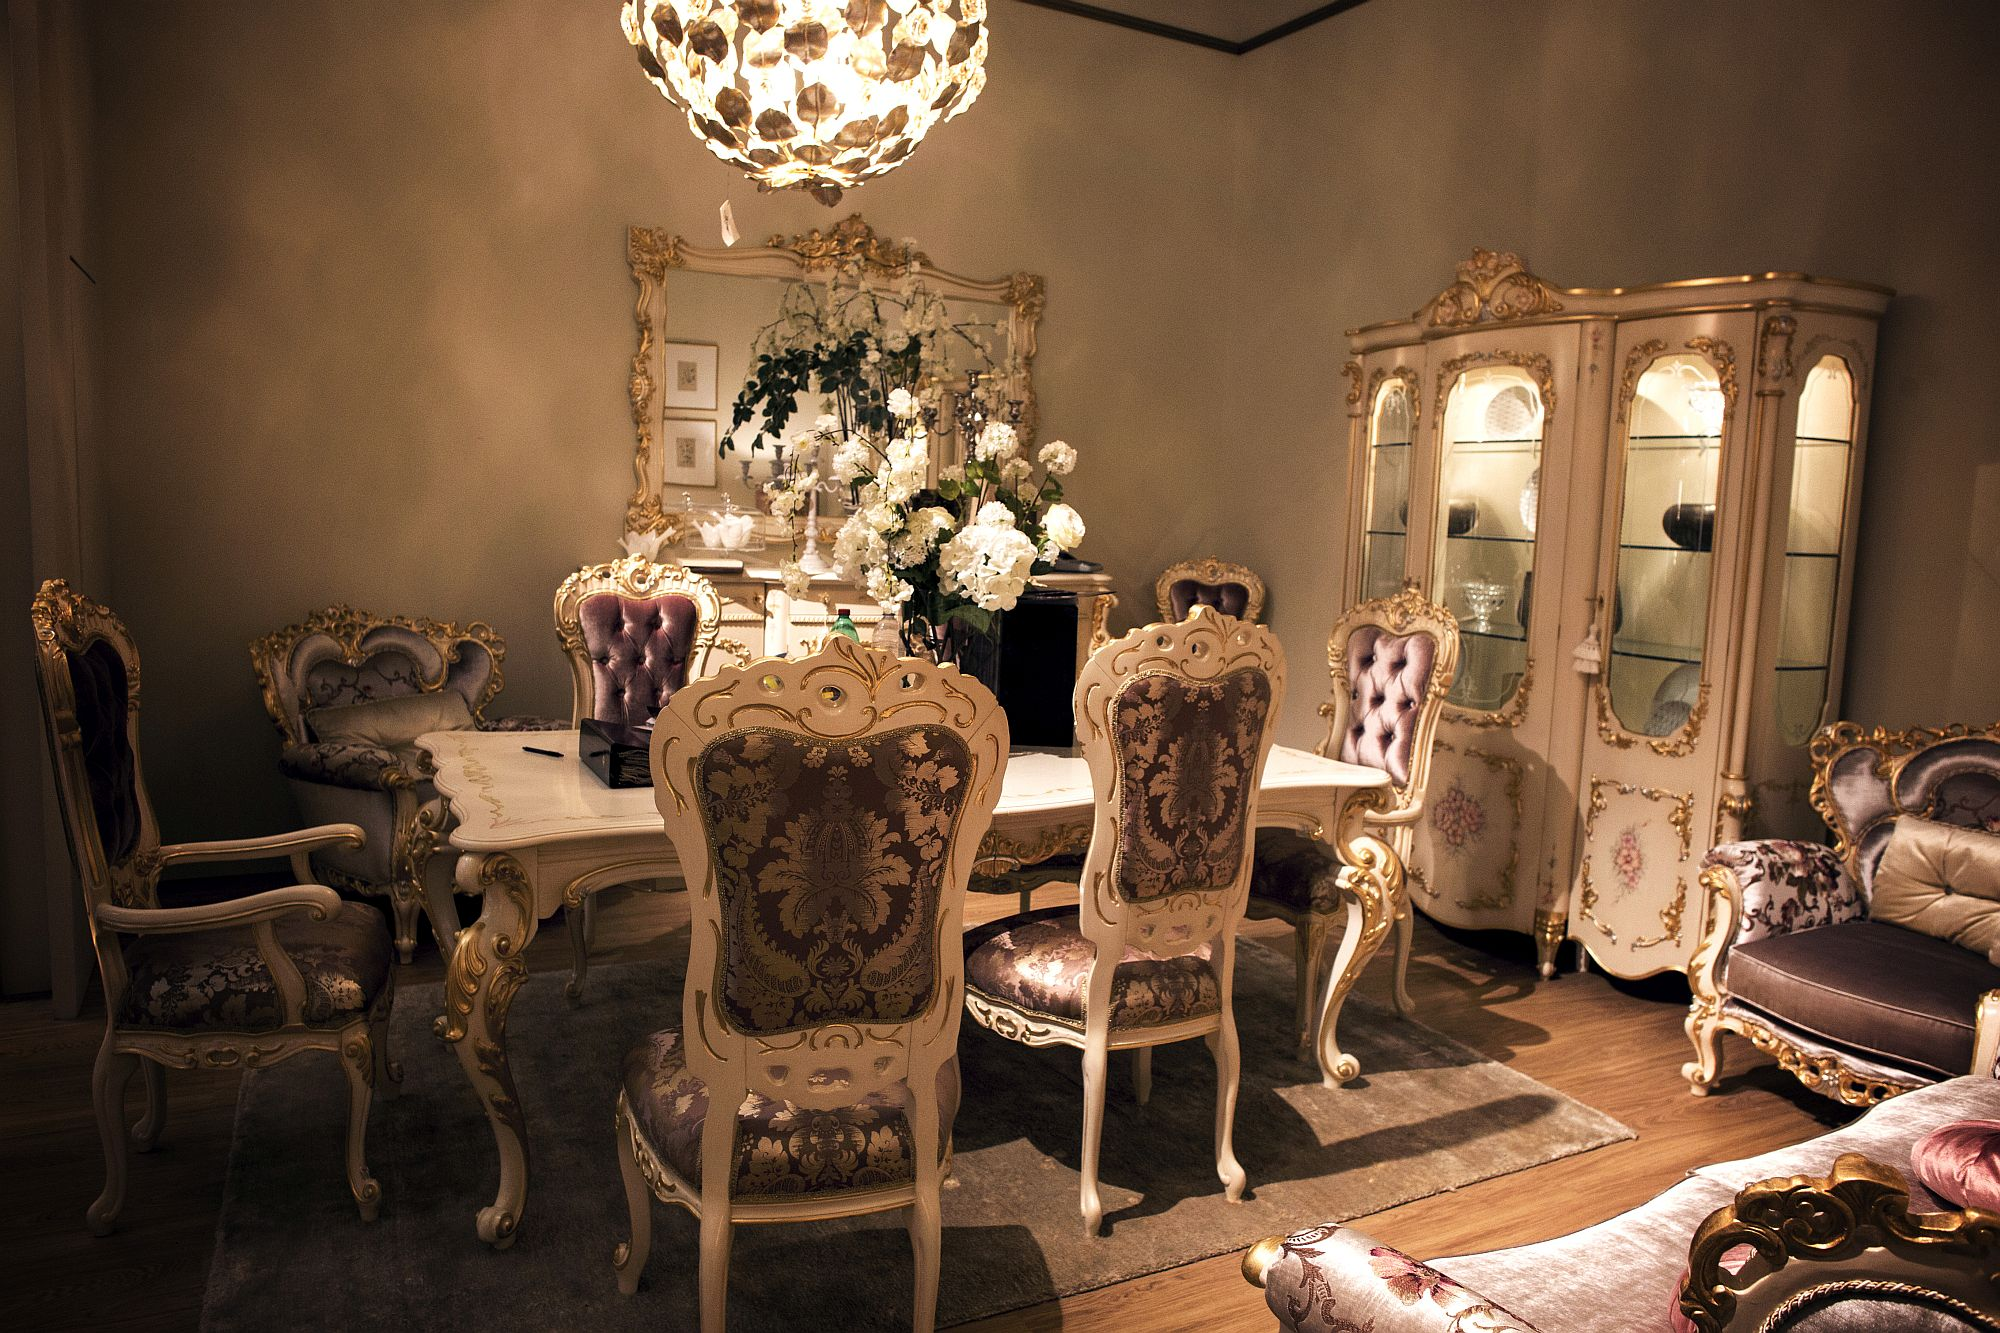 Classic cabinet, dining table chairs and a hint of purple for the exquisite dining room